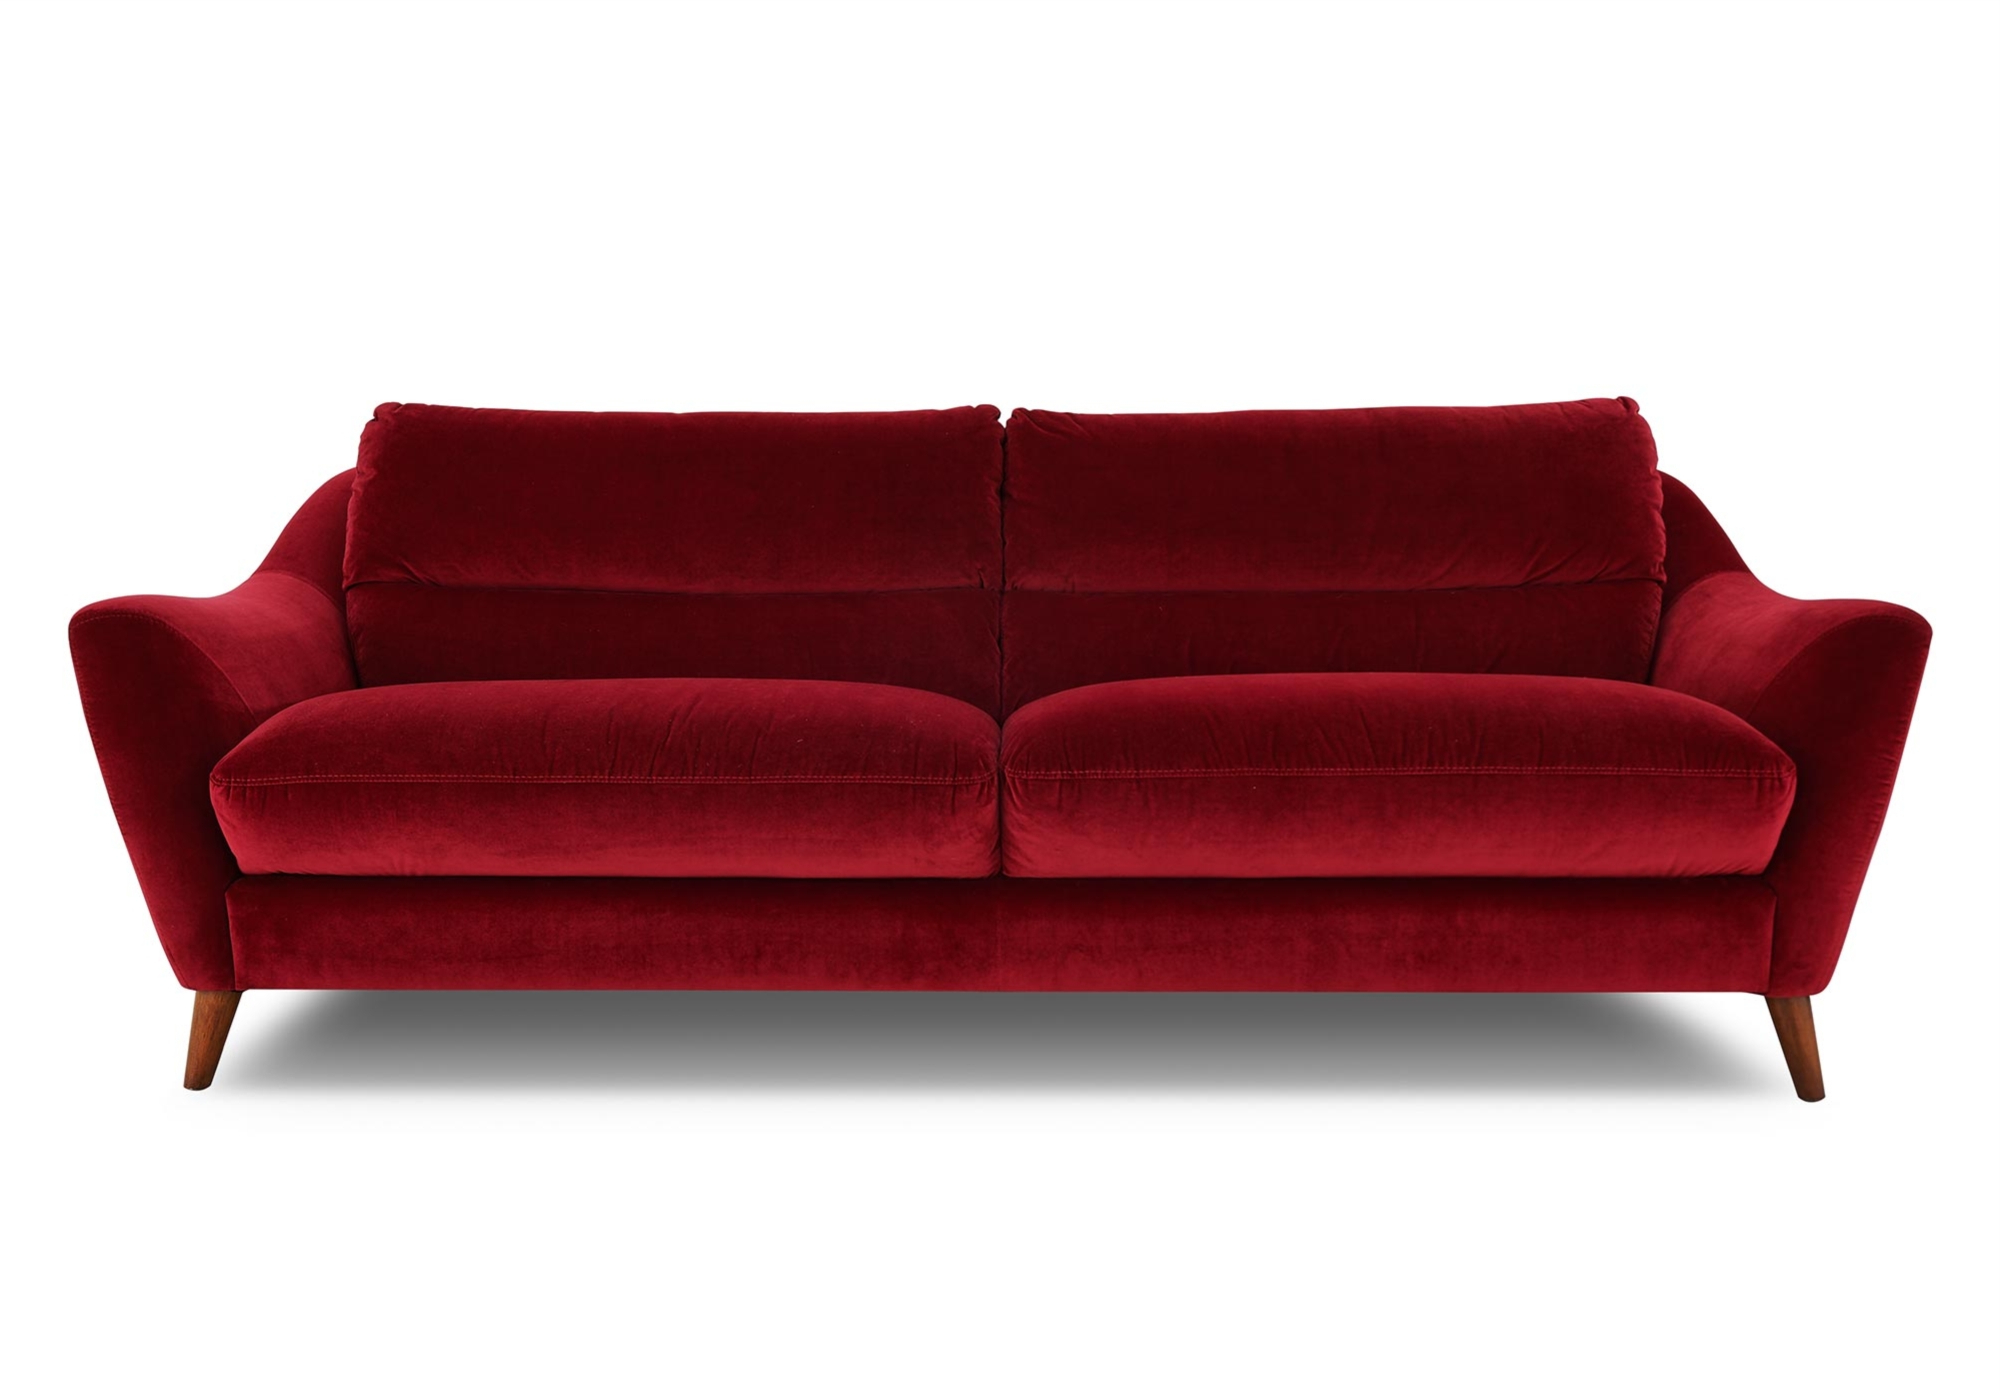 Red Sofas And Chairs Inside Well Known Sofa: Beautiful Fabric Sofa Fabric Sofas On Sale, Fabric Sectional (View 14 of 20)